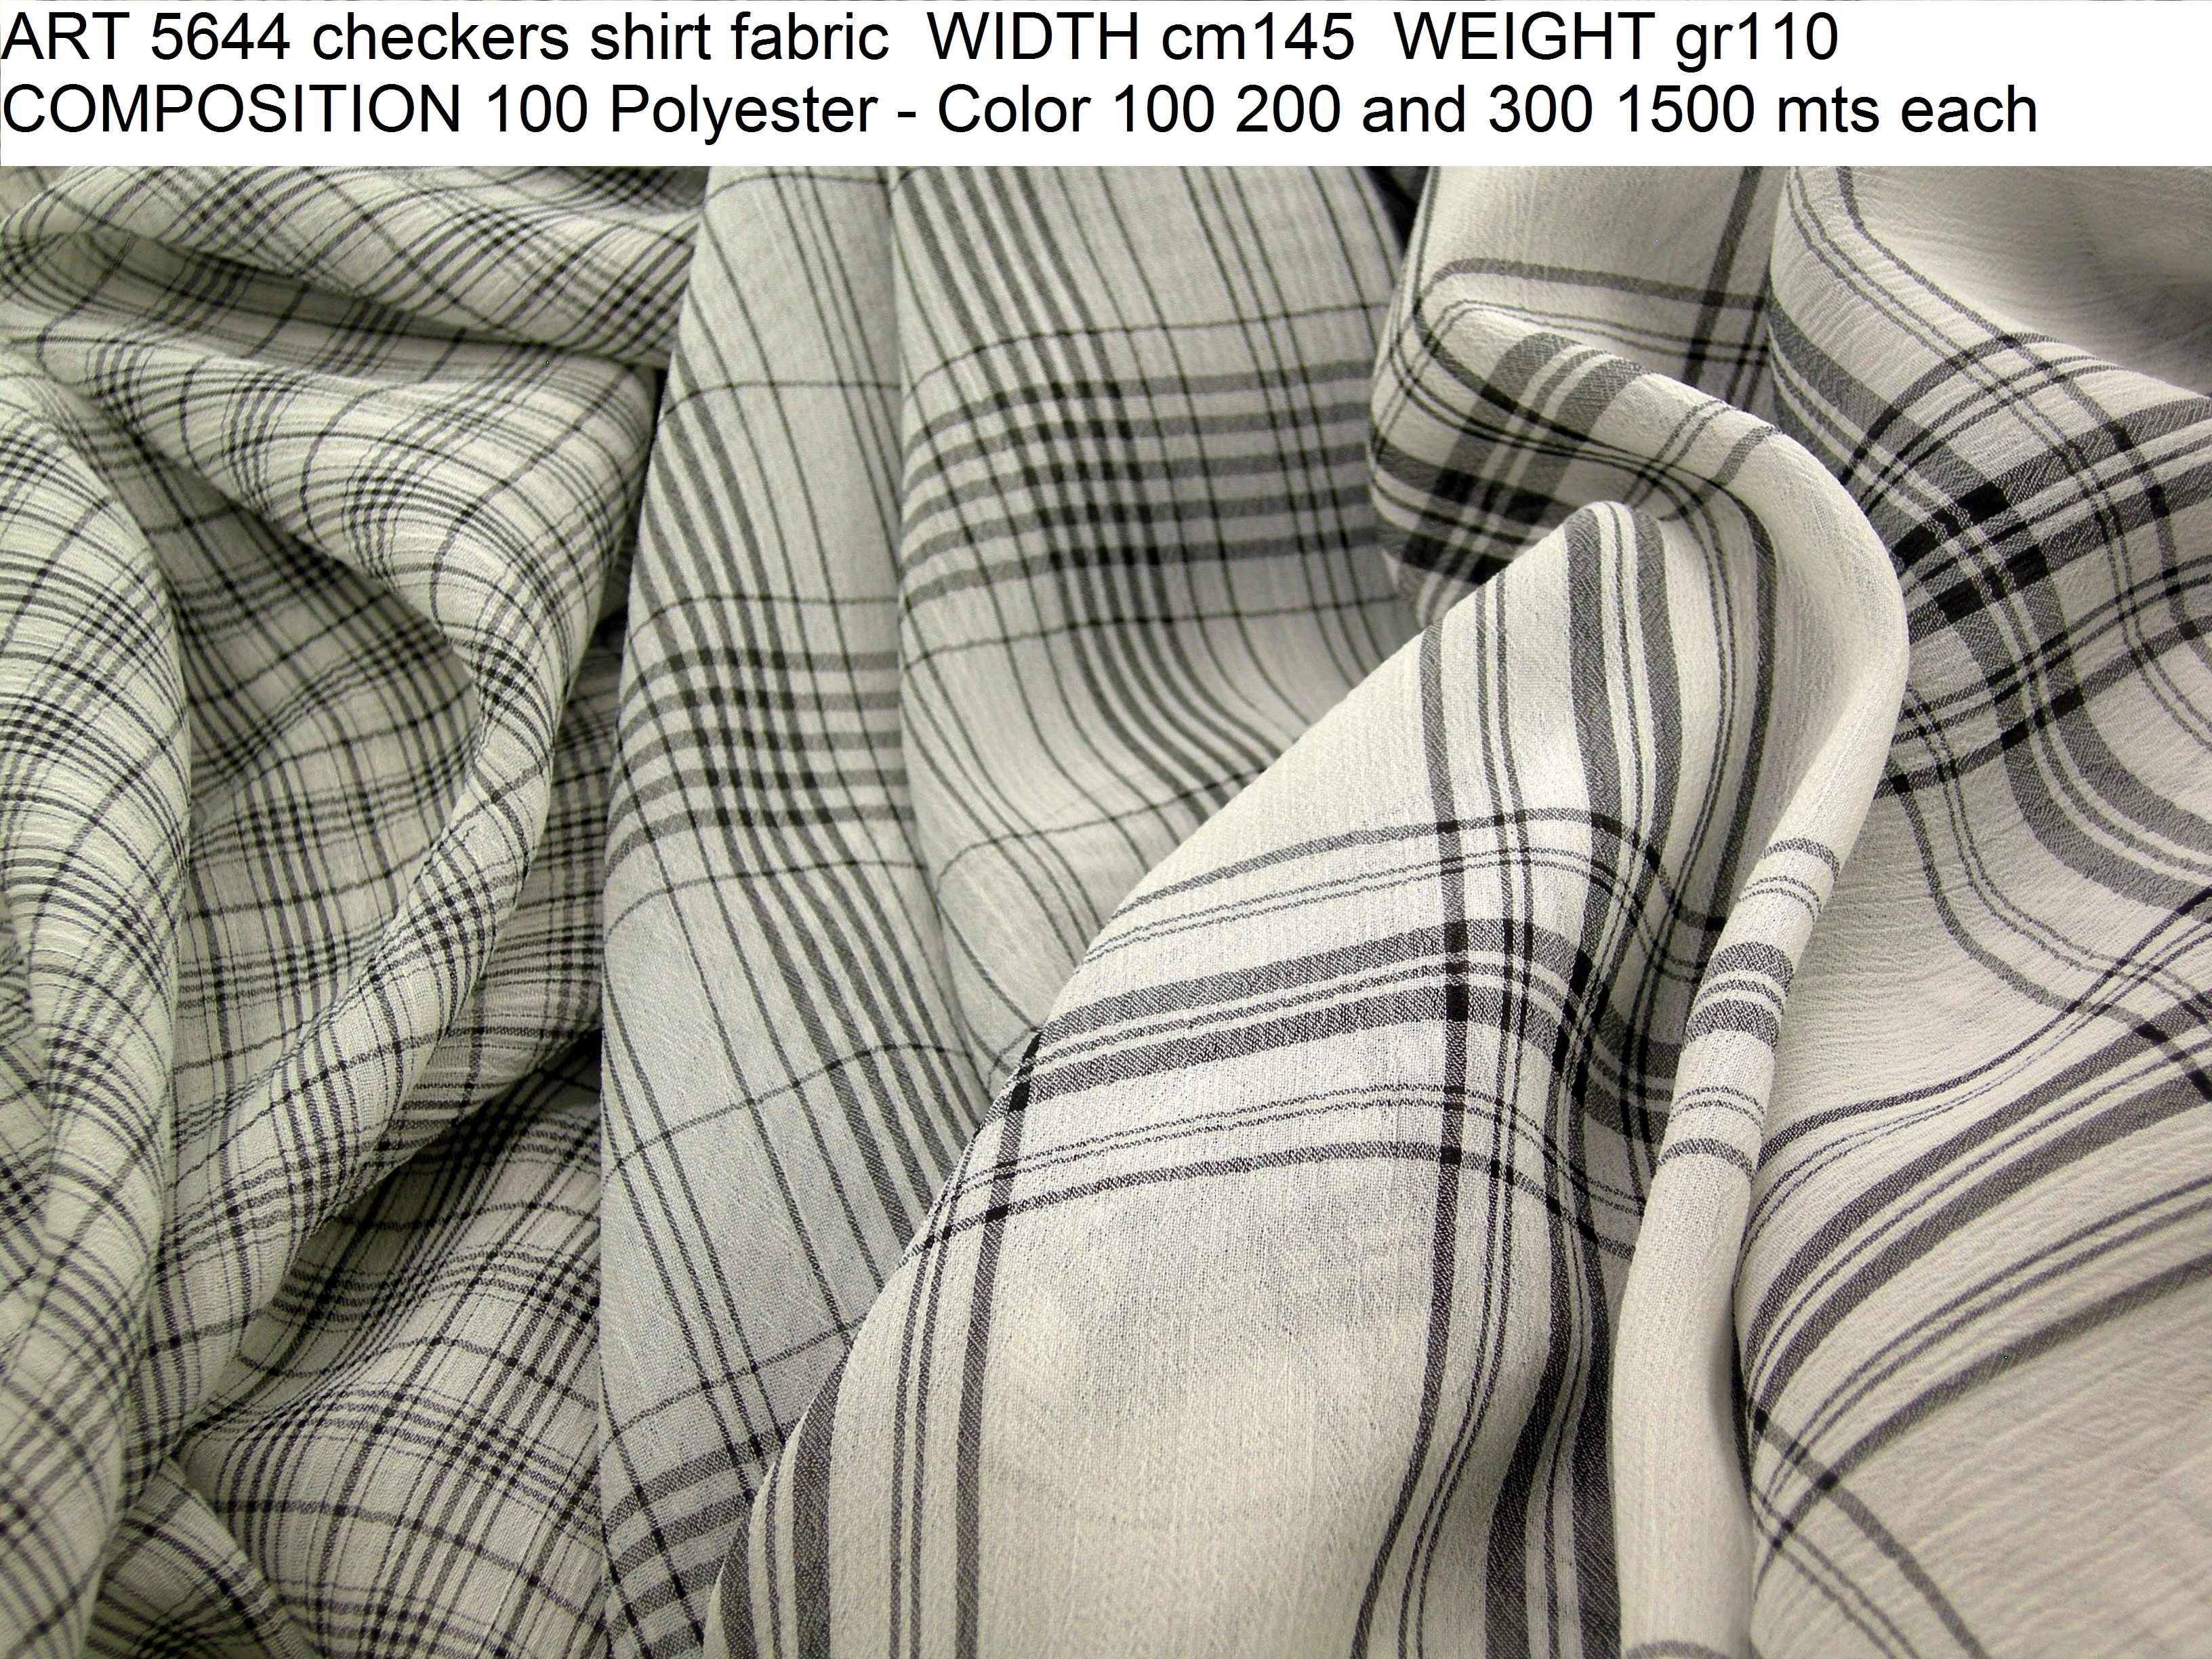 ART 5644 checkers shirt fabric WIDTH cm145 WEIGHT gr110 COMPOSITION 100 Polyester - Color 100 200 and 300 1500 mts each